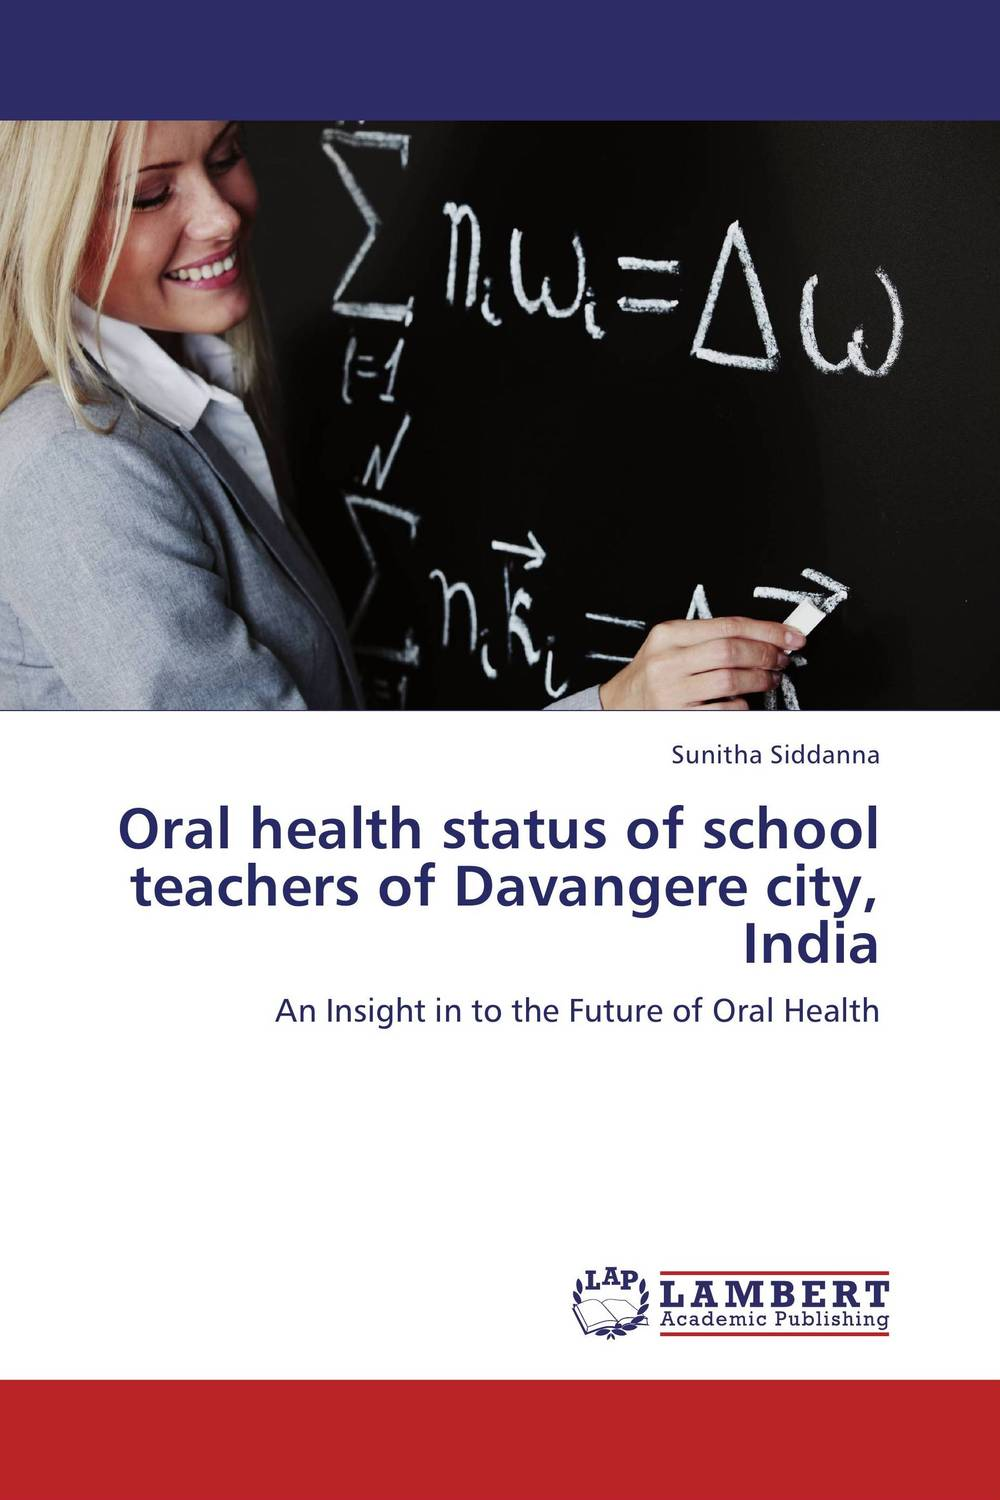 Oral health status of school teachers of Davangere city, India prostate health devices is prostate removal prostatitis mainly for the prostate health and prostatitis health capsule